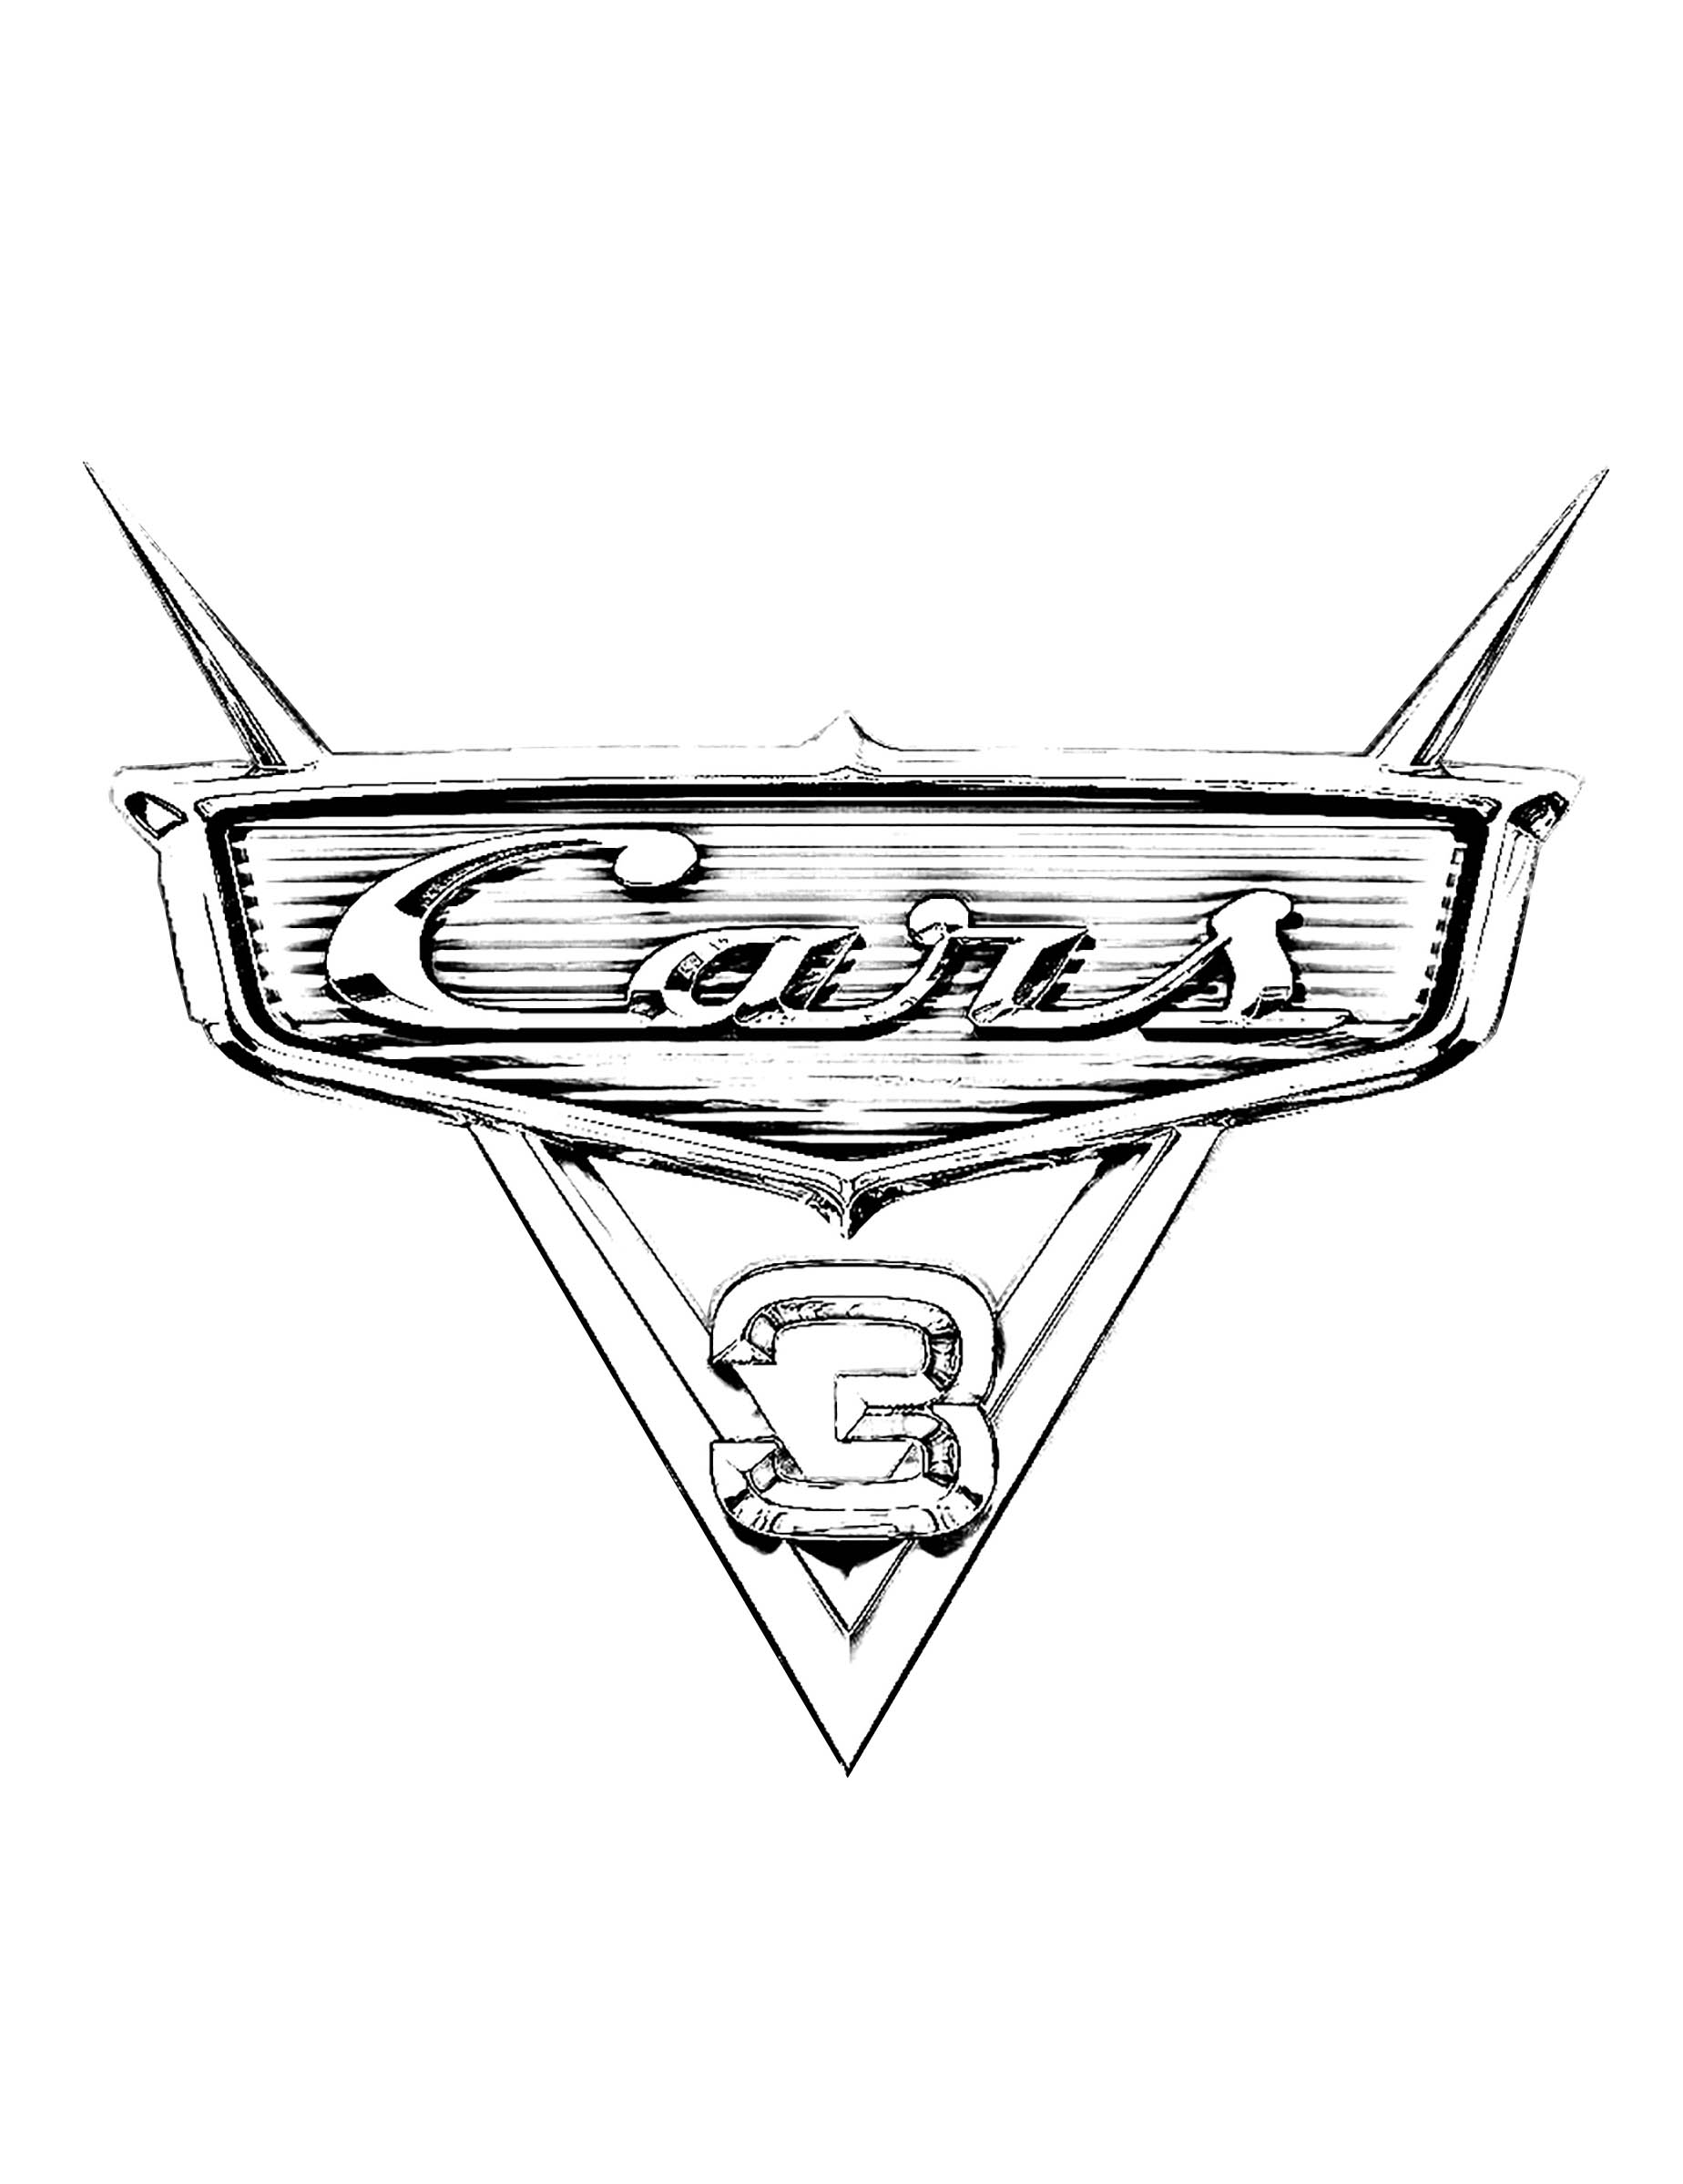 Cars 3 logo coloriage cars 3 coloriages pour enfants - Coloriages de cars ...